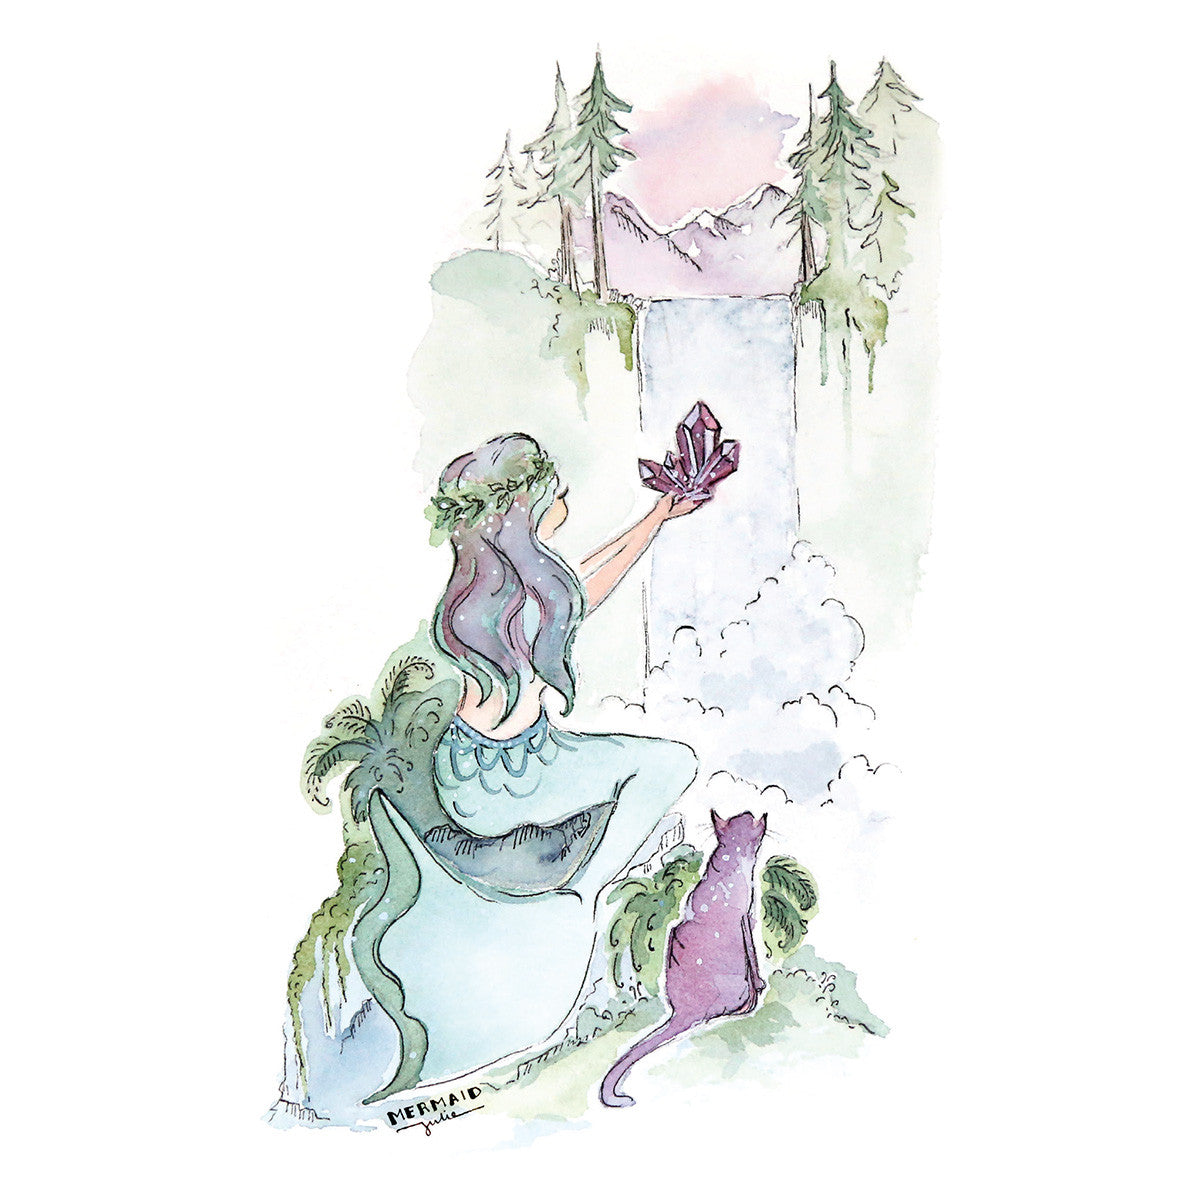 Design Bathroom Amethyst Forest Mermaid Art Print 5x7 Seatail